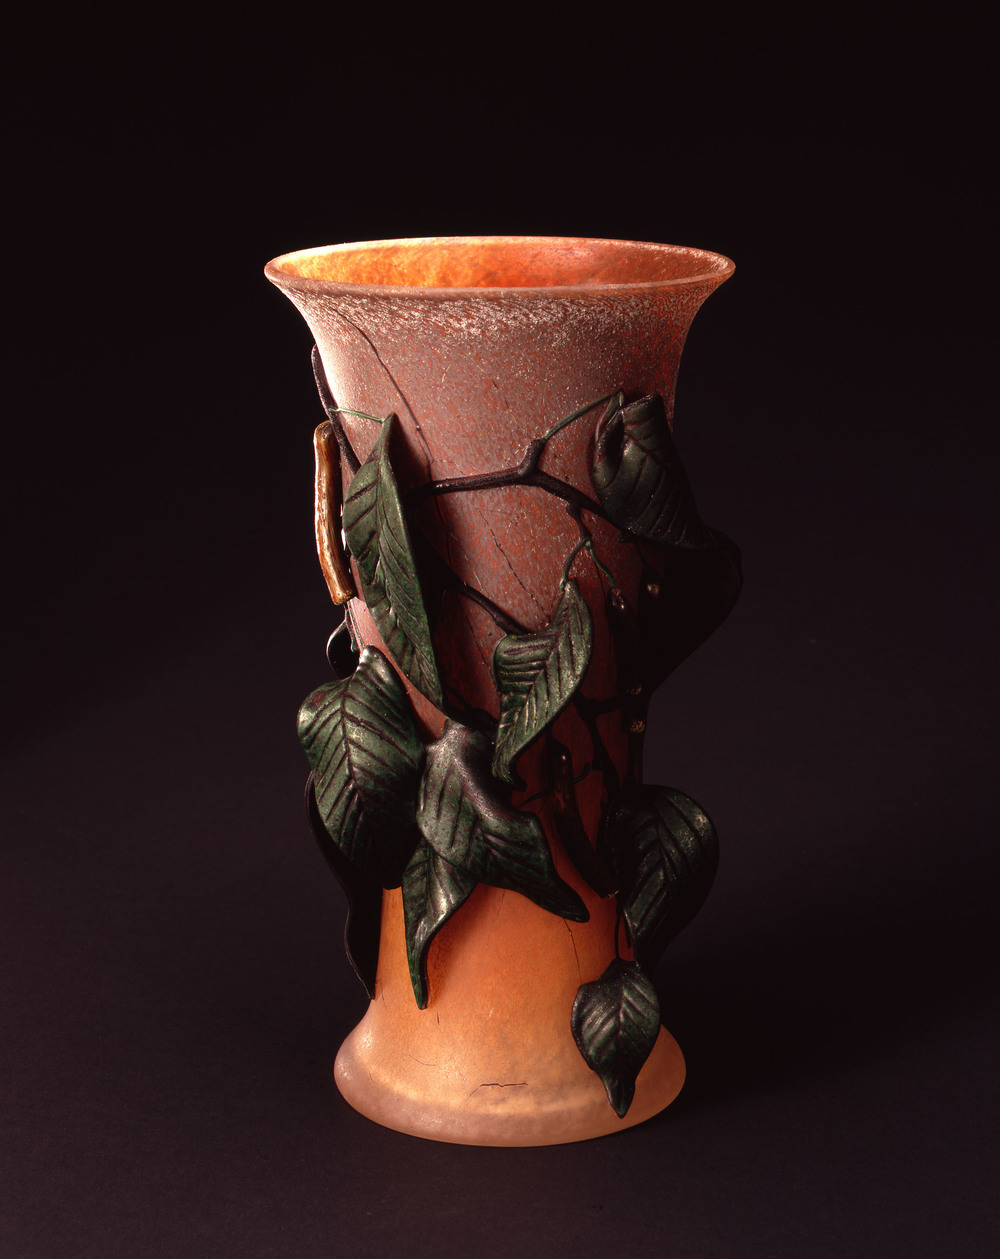 William Morris,  Vase with Leaves and Locust Pods    (2004, glass, 11 3/8 x 6 1/4 x 6 1/4 inches), WM.46